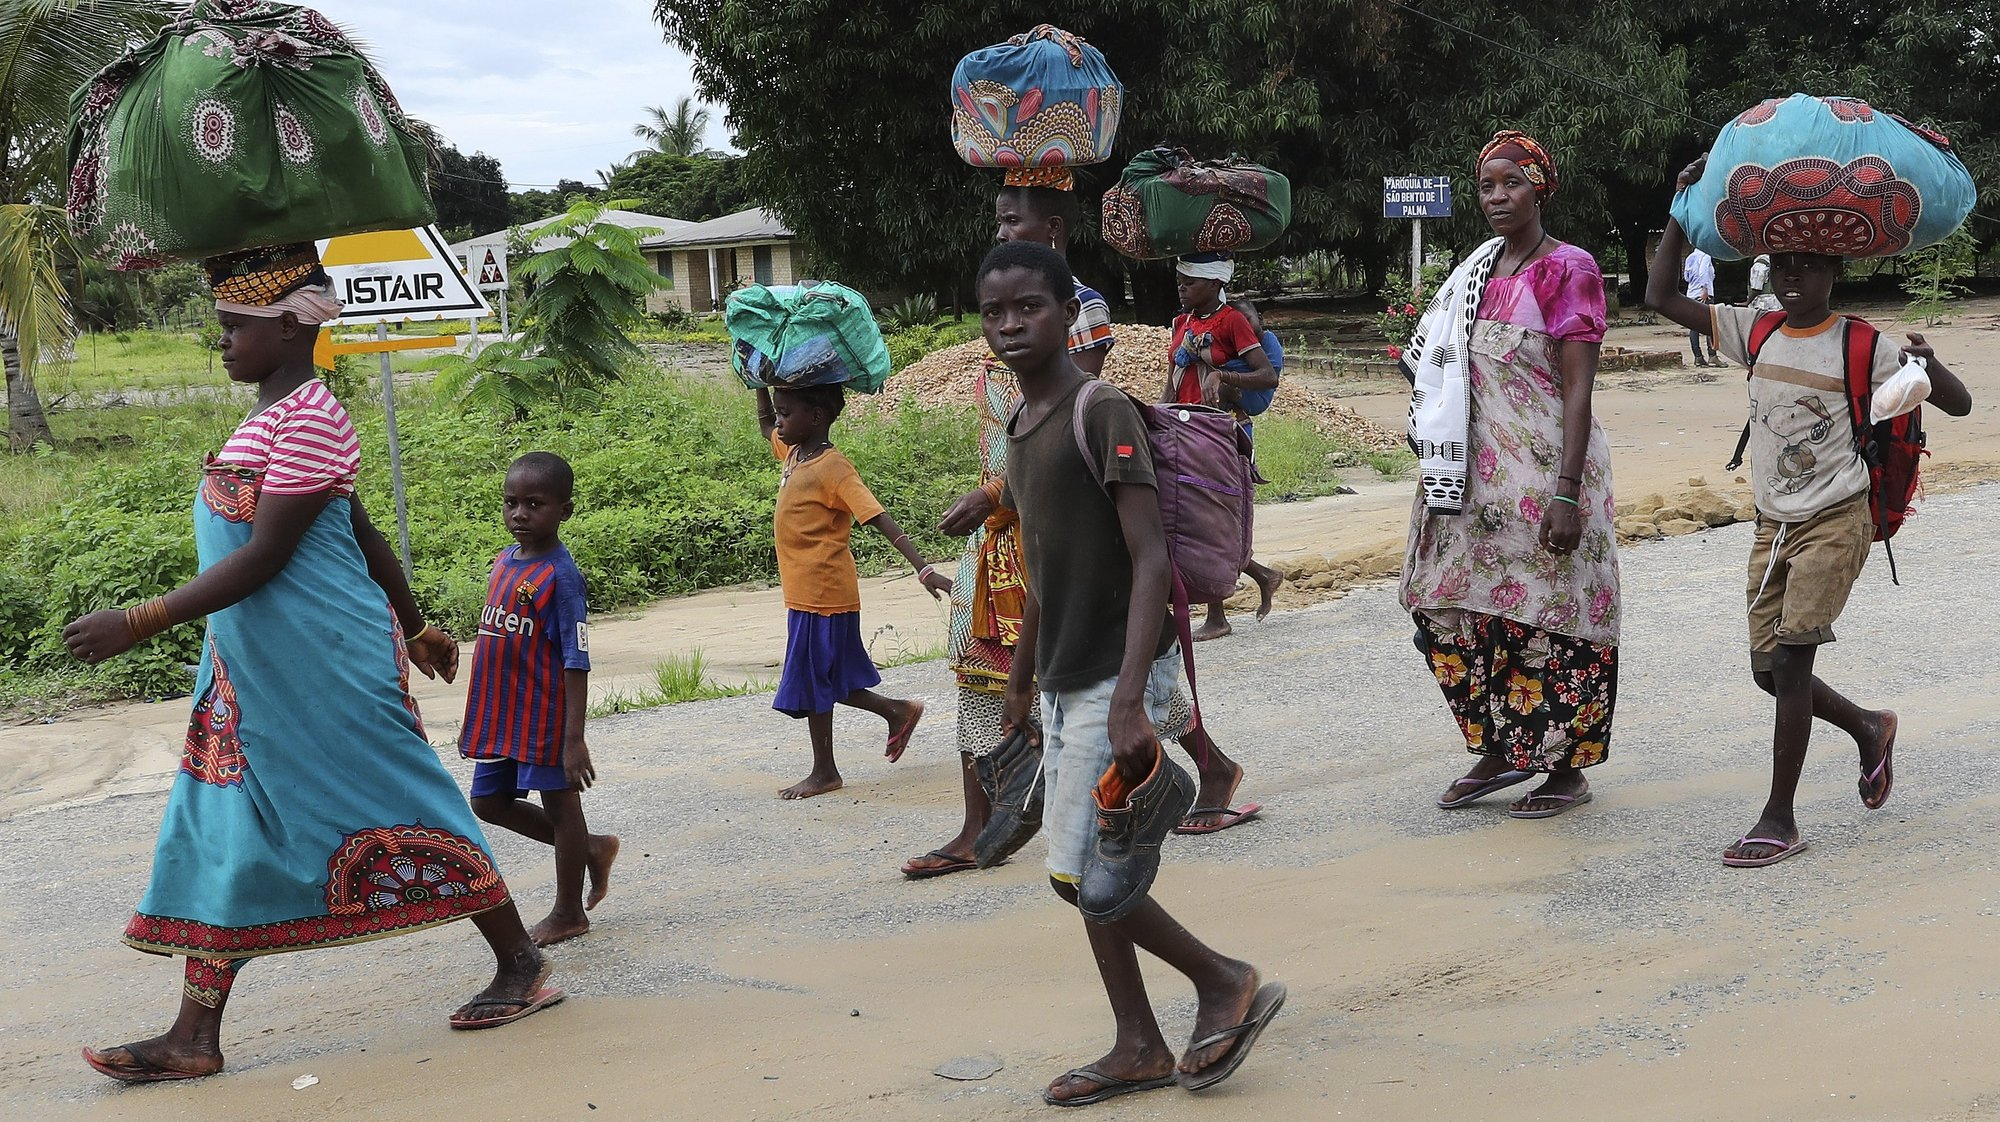 Residents try to return to normality in Palma., Cabo Delgado, Mozambique, 12 April 2021. The violence unleashed more than three years ago in Cabo Delgado province escalated again about two weeks ago, when armed groups first attacked the town of Palma. JOAO RELVAS/LUSA